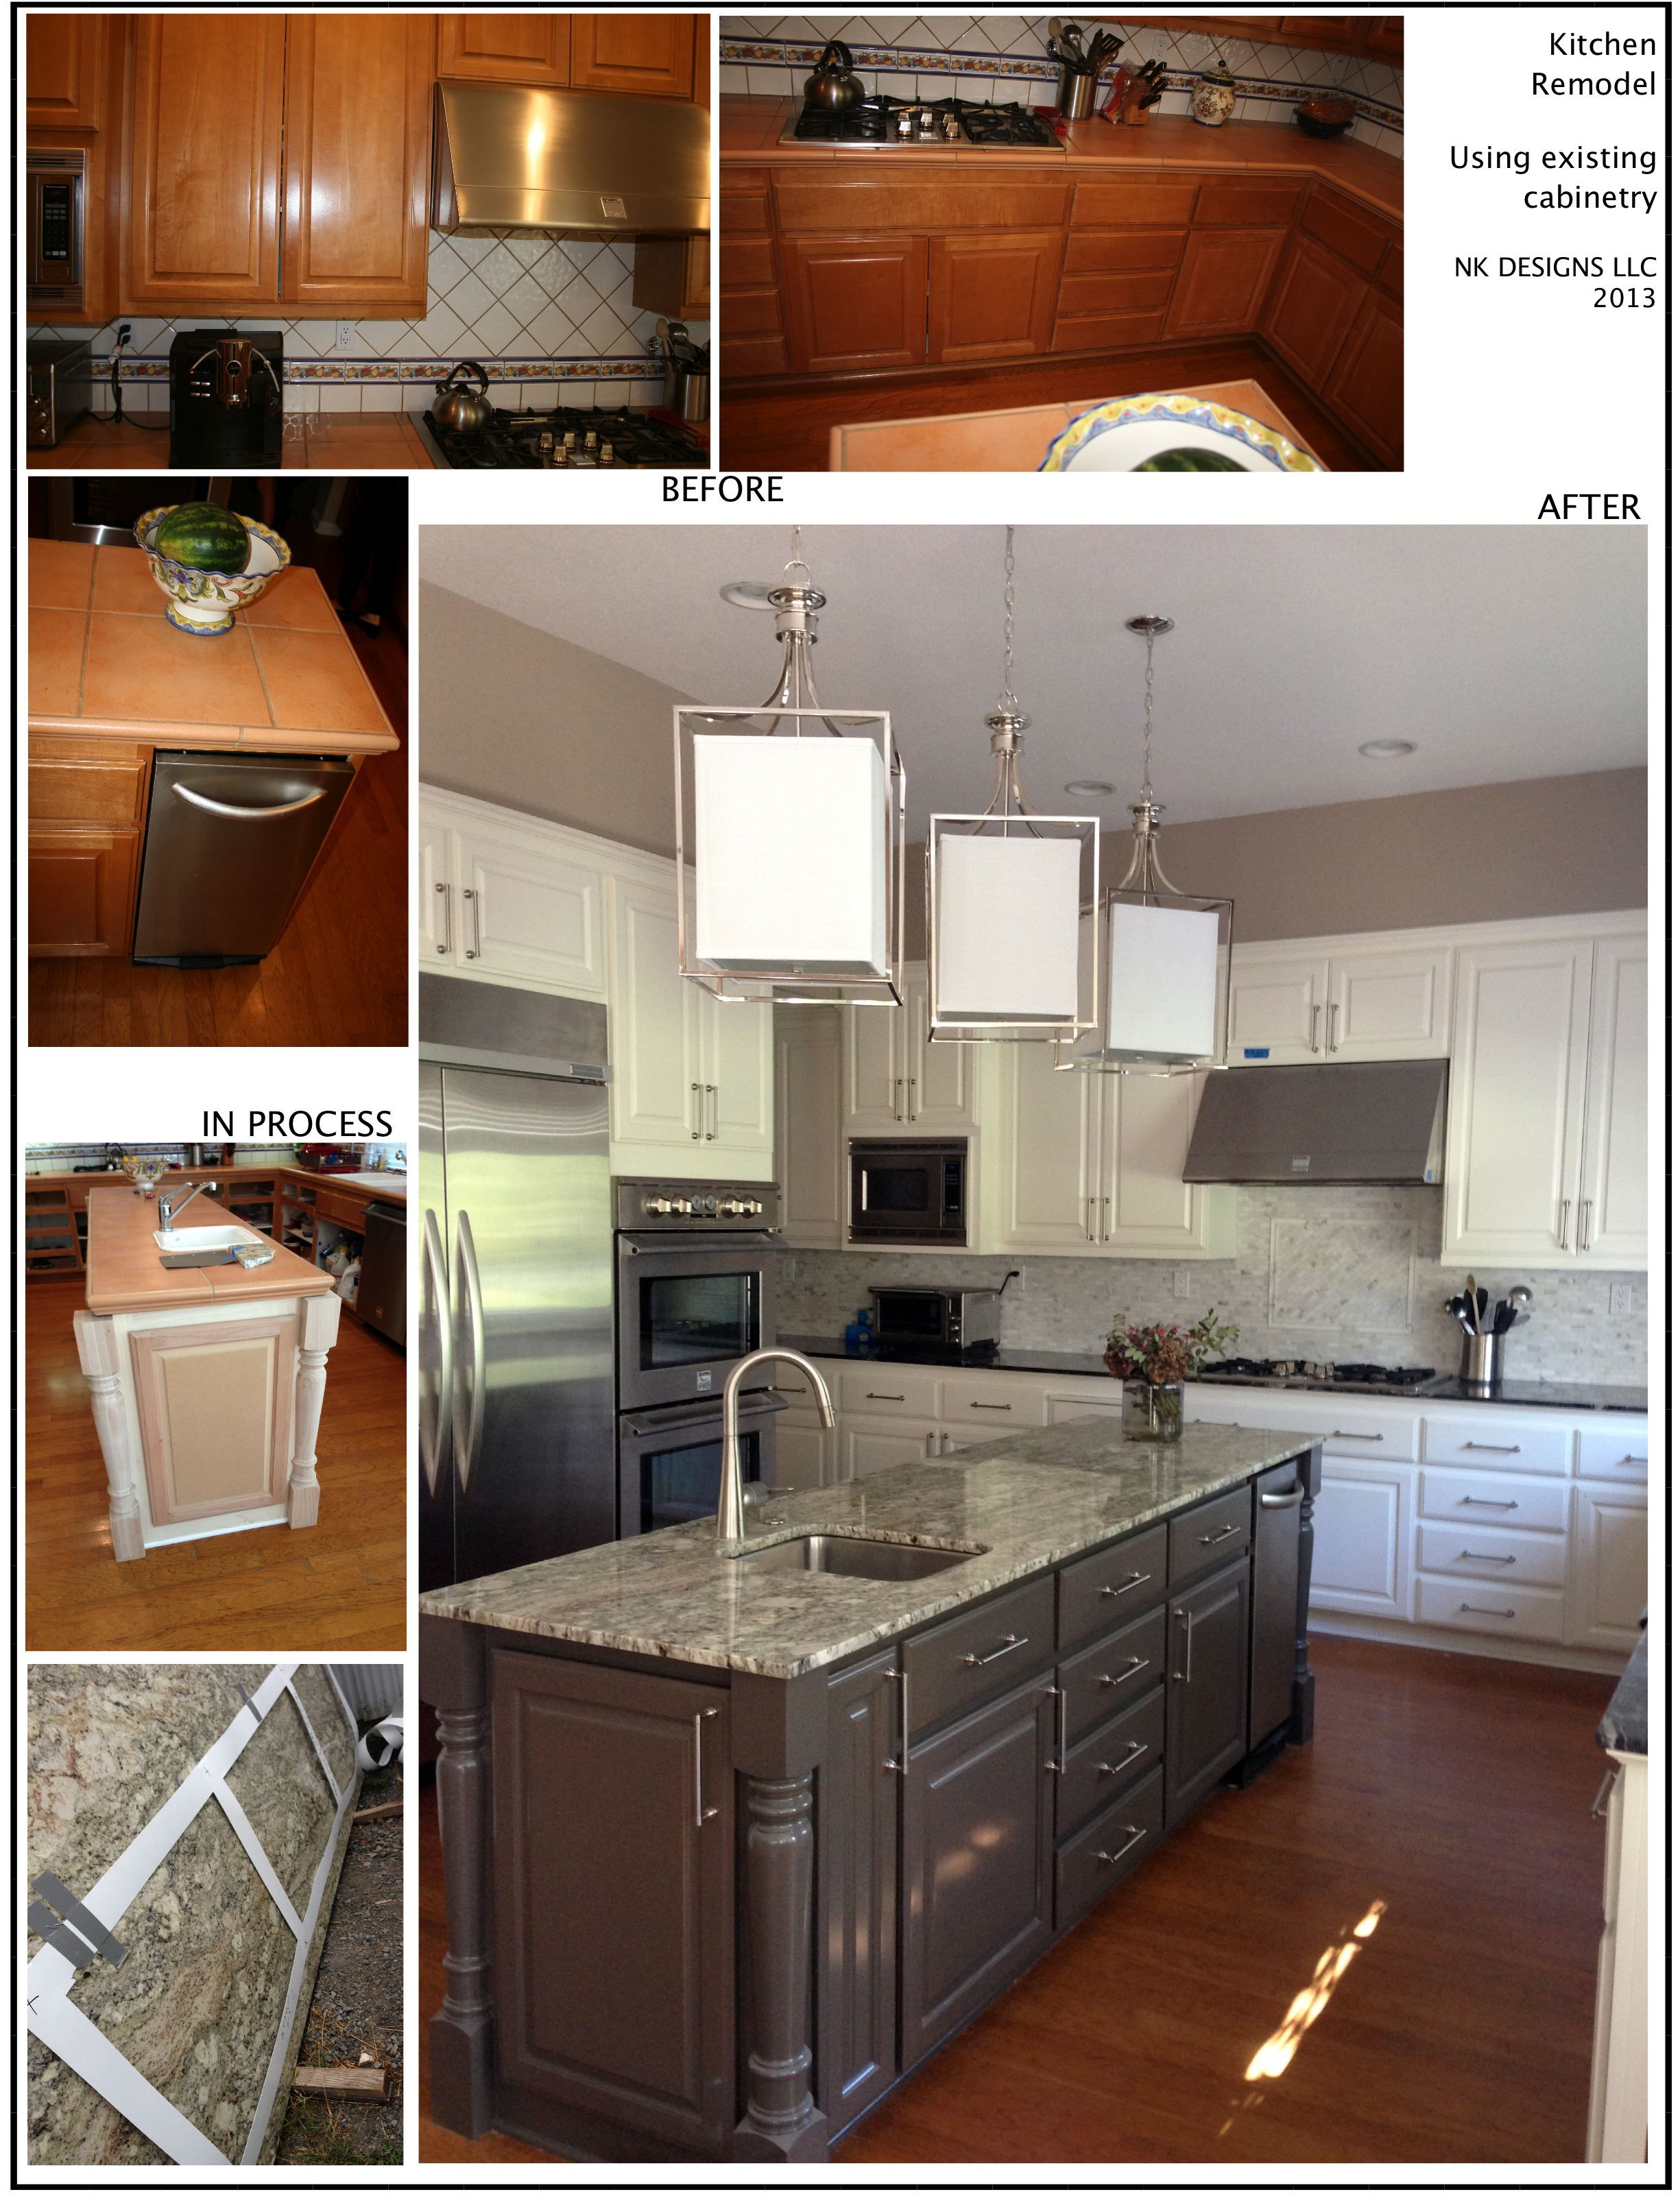 Diy Breakfast Bar Frame Built To An Existing Kitchen Island: Kitchen Design/build Utilizing Existing Cabinets. Added